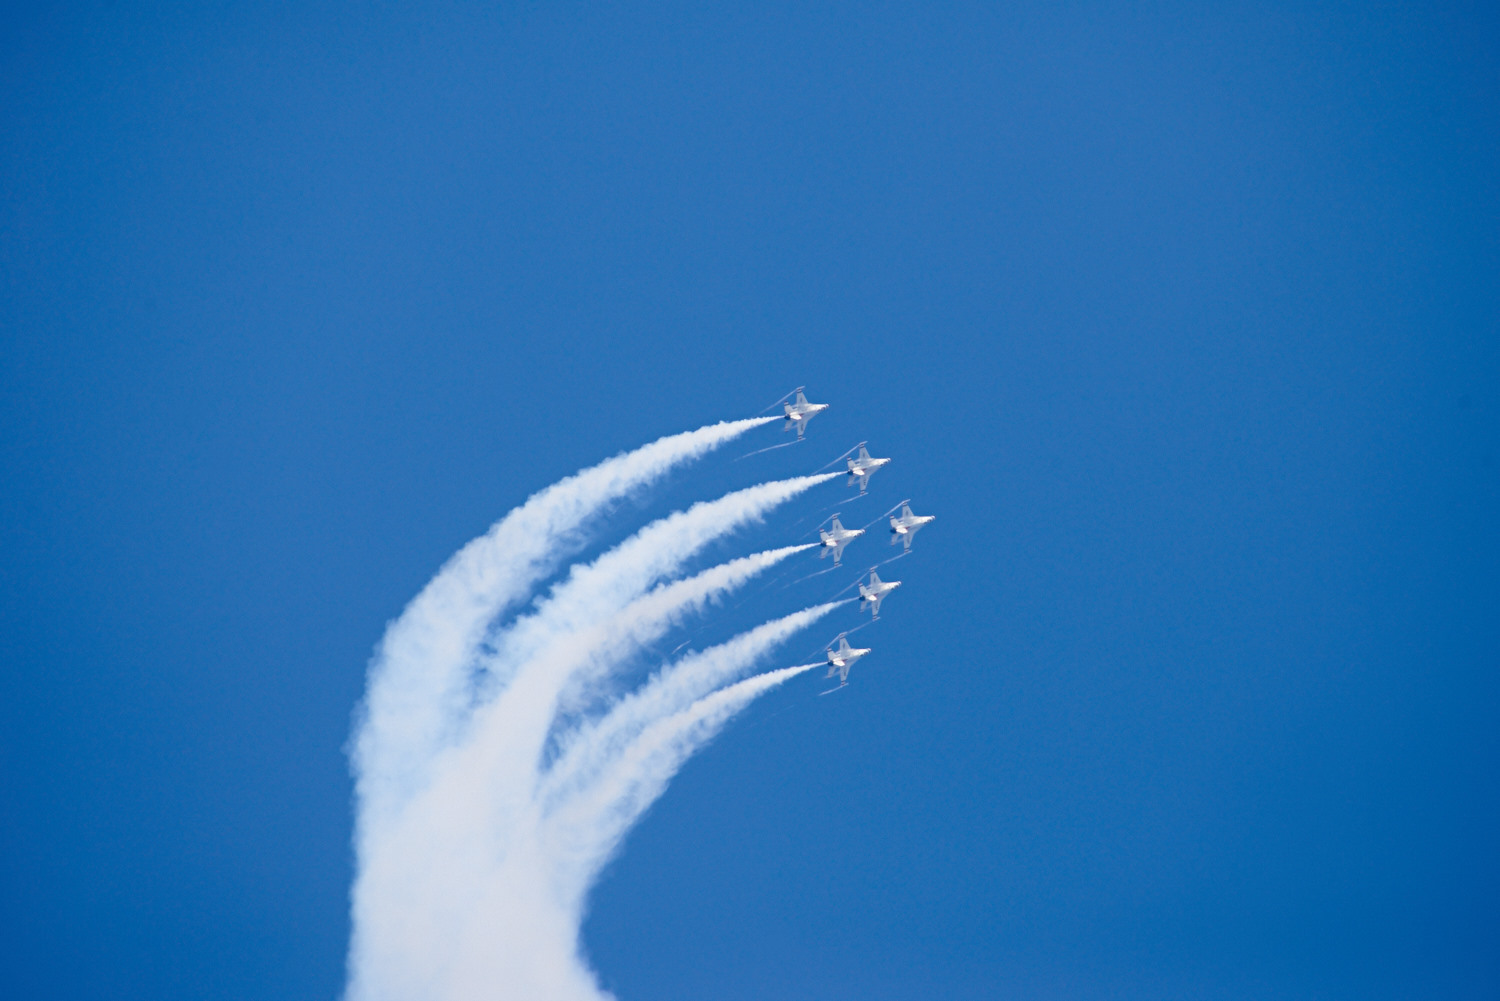 All the Thunderbirds flying in a Delta Formation